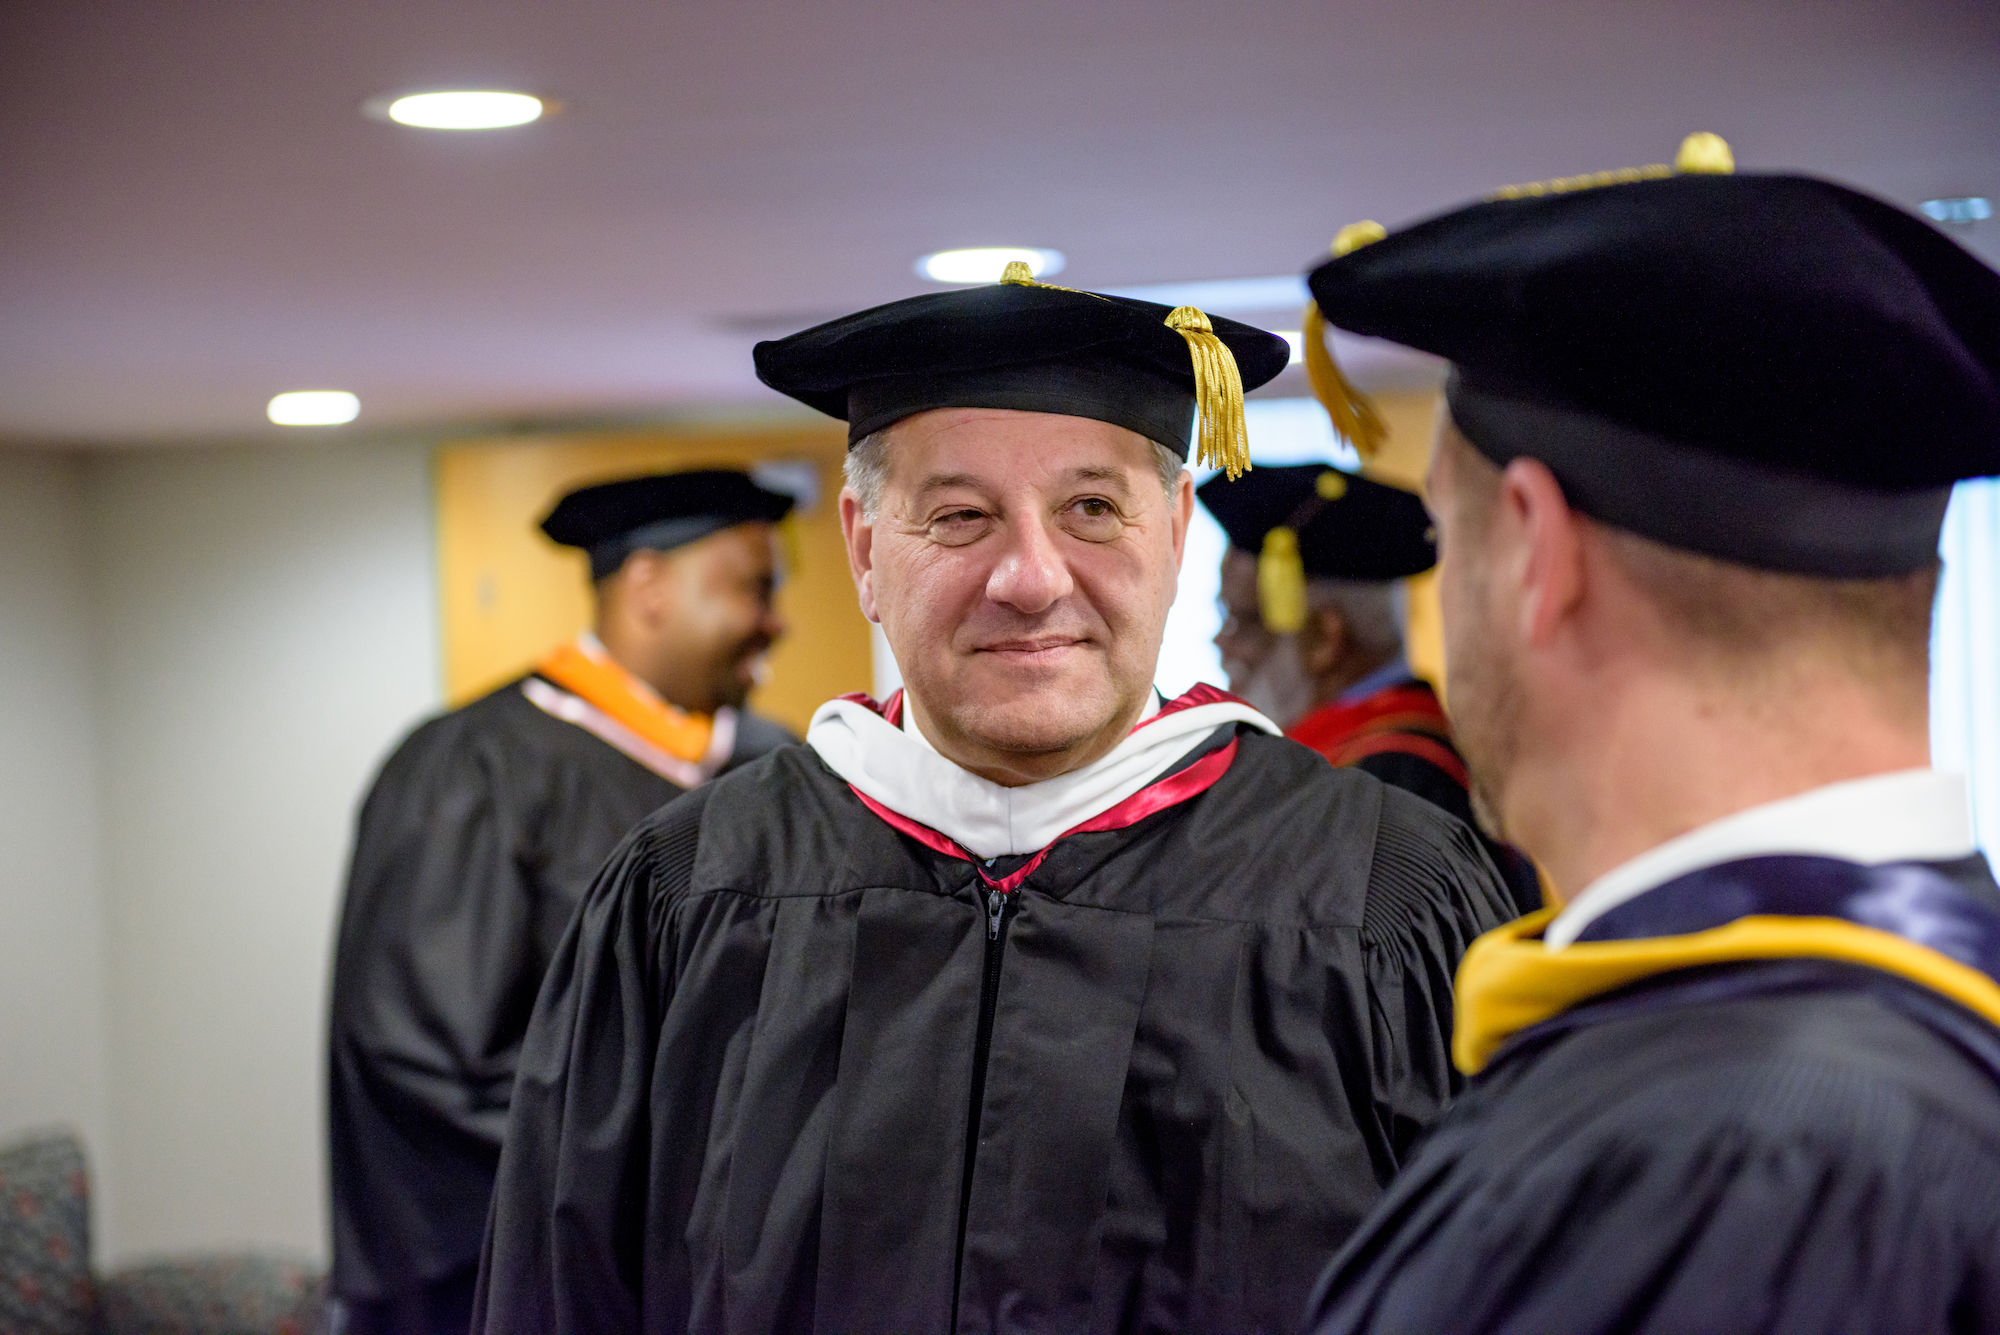 RHIT_Commencement_Platform_Party_Robing-21597.jpg